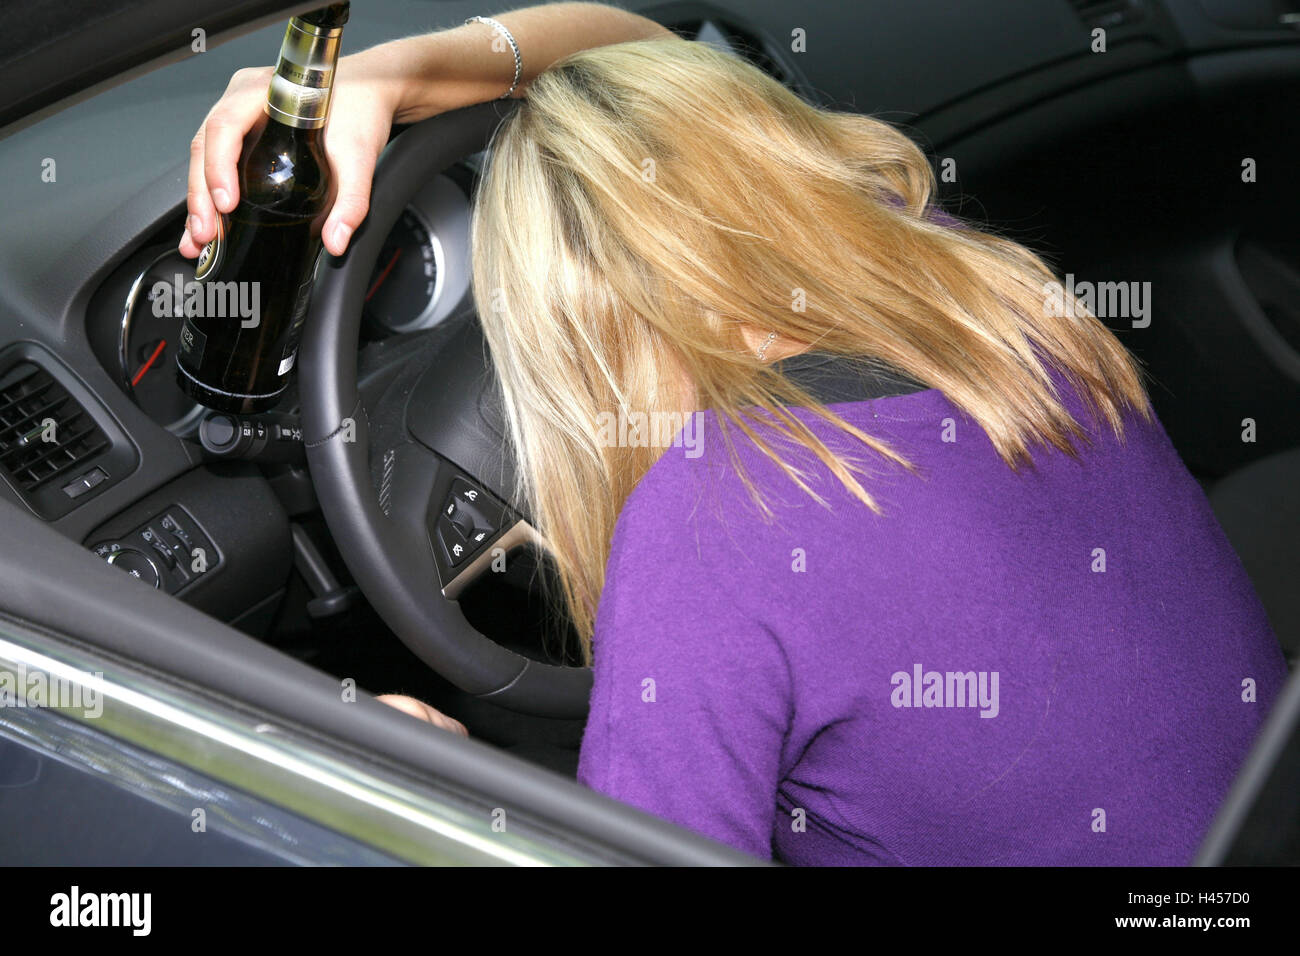 Woman, car, tax, alcoholizes, beer bottle, danger, traffic, - Stock Image